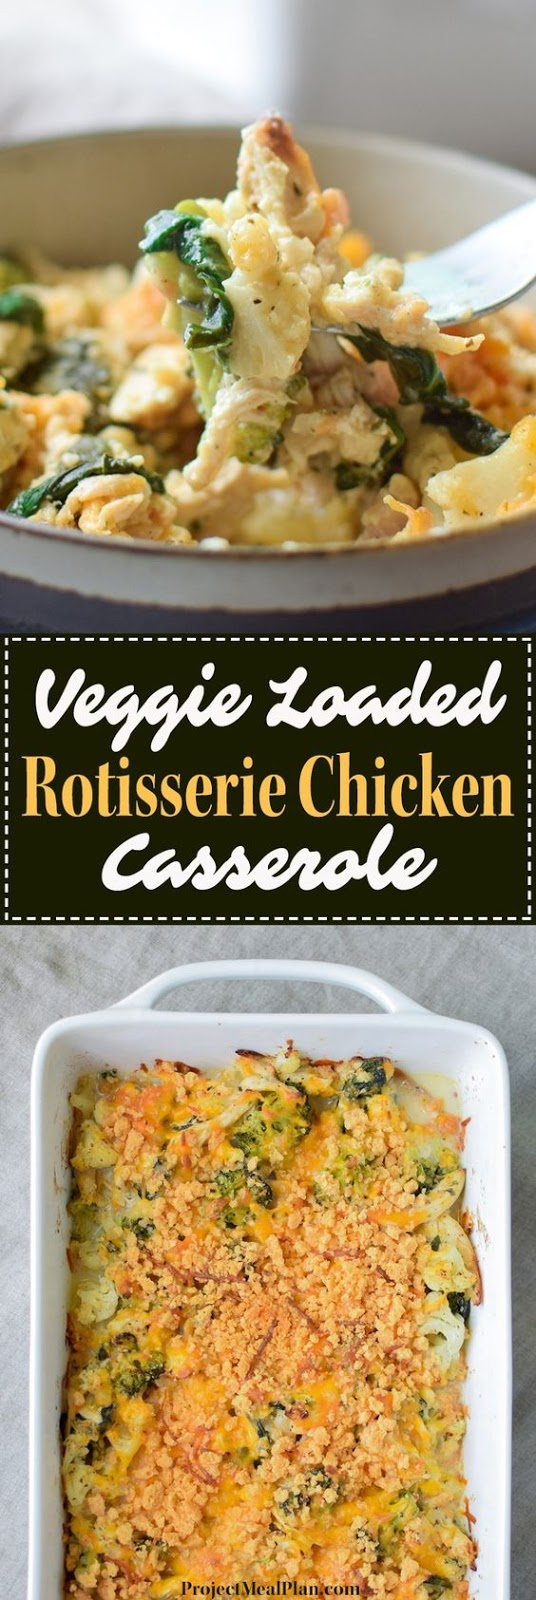 The Veggie Loaded Rotisserie Chicken Casserole is exactly what your dinner menu rotation needs! Family friendly, low-carb, and seriously packed with vegetables. It's super easy to modify and makes the best leftovers!